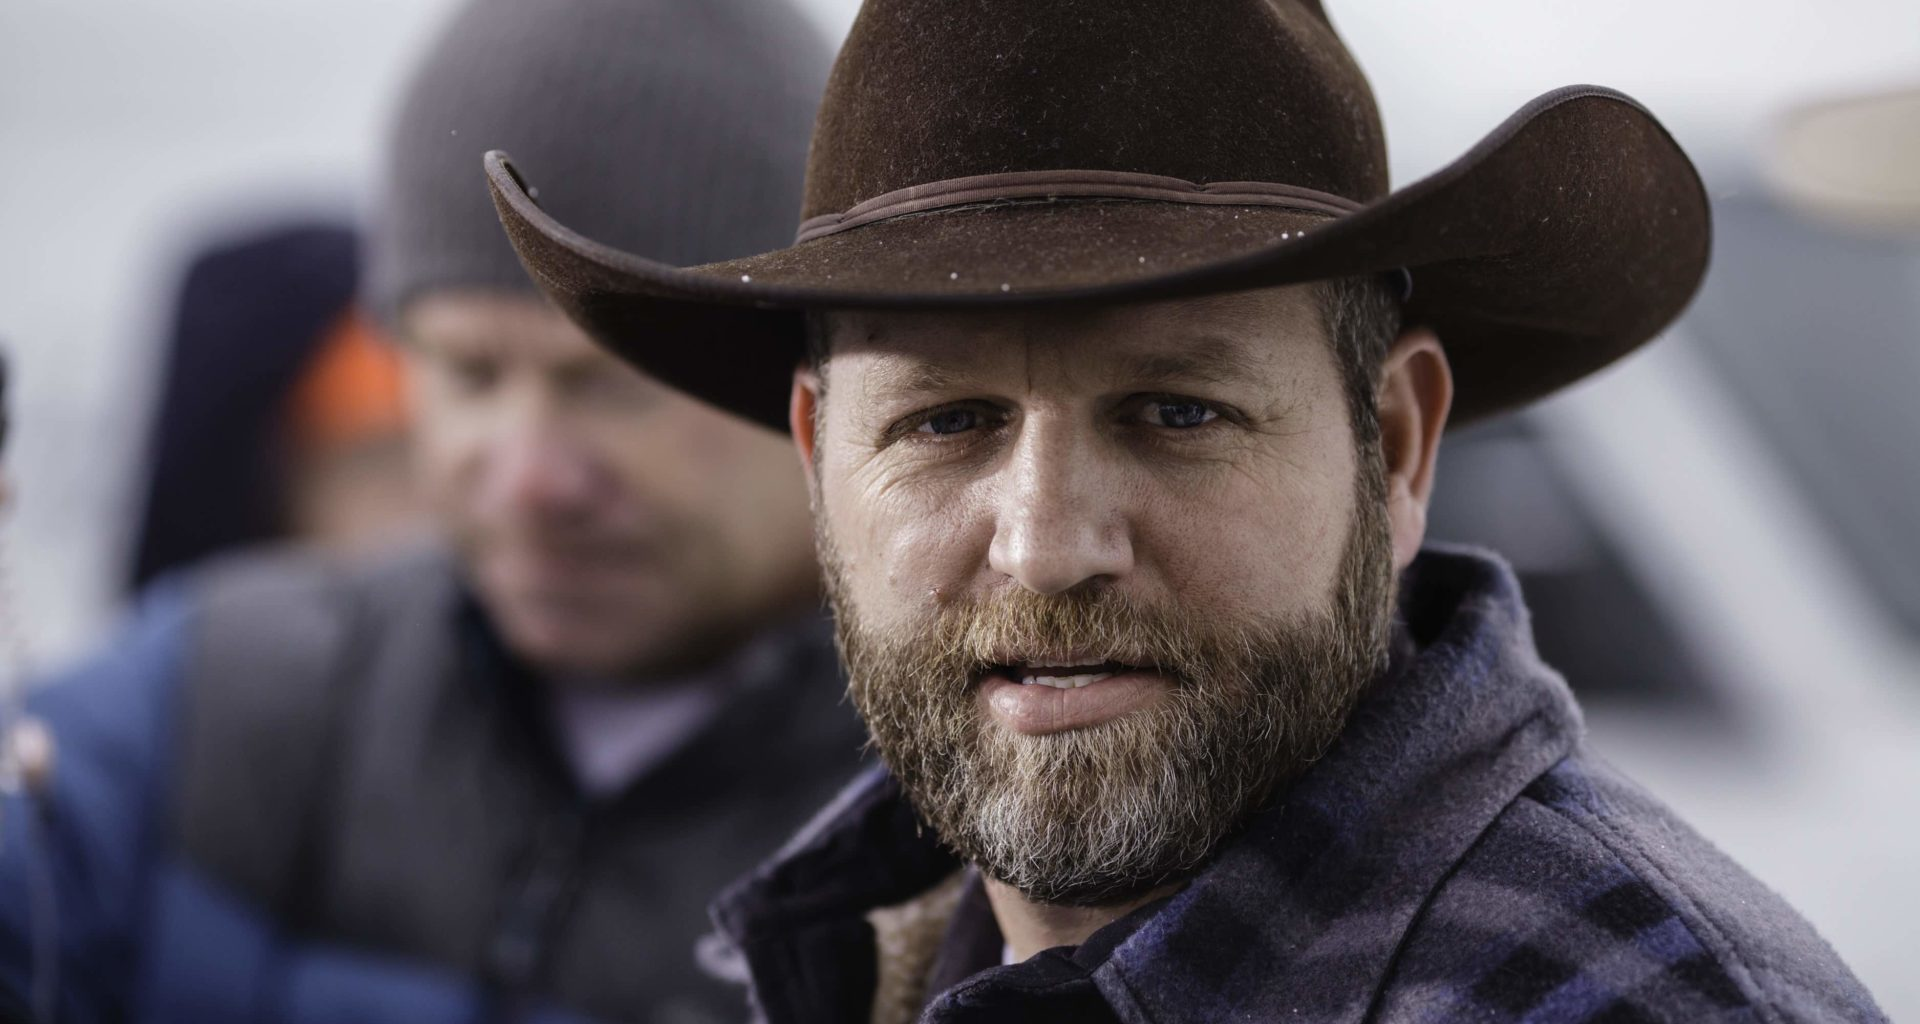 Ammon Bundy's Victim Burns, Oregon Not The Federal Government